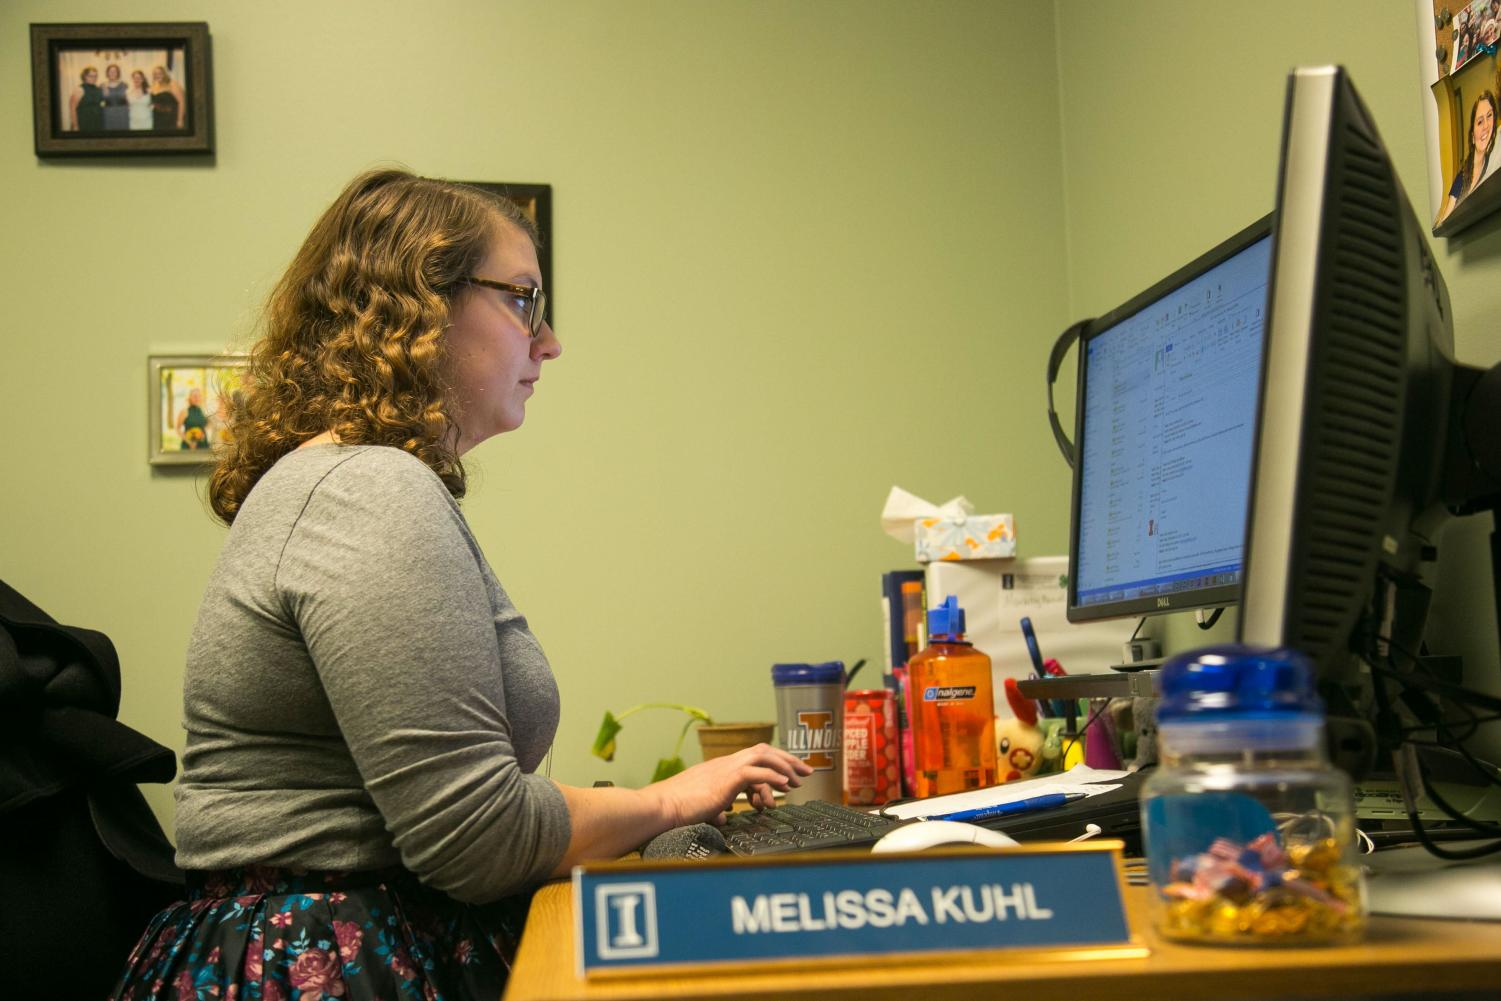 Melissa Kuhl, publicity specialist, working at the Illinois Extension office on Nov. 10, 2017.